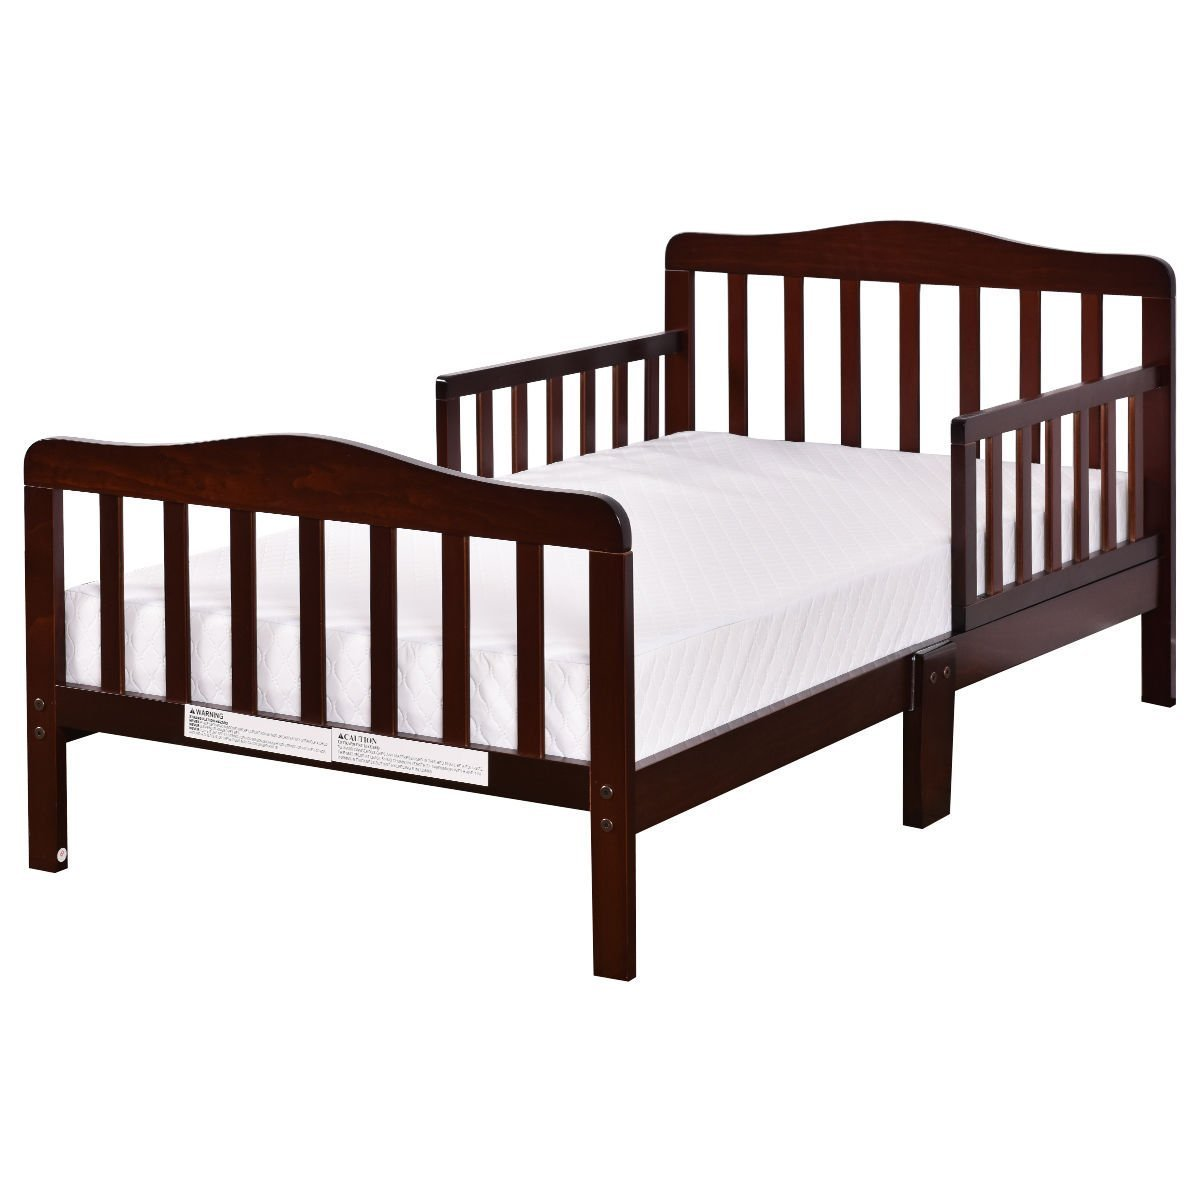 Costzon Toddler Bed, Wood Kids Bedframe Children Classic Sleeping Bedroom Furniture w/Safety Rail Fence (Cherry)